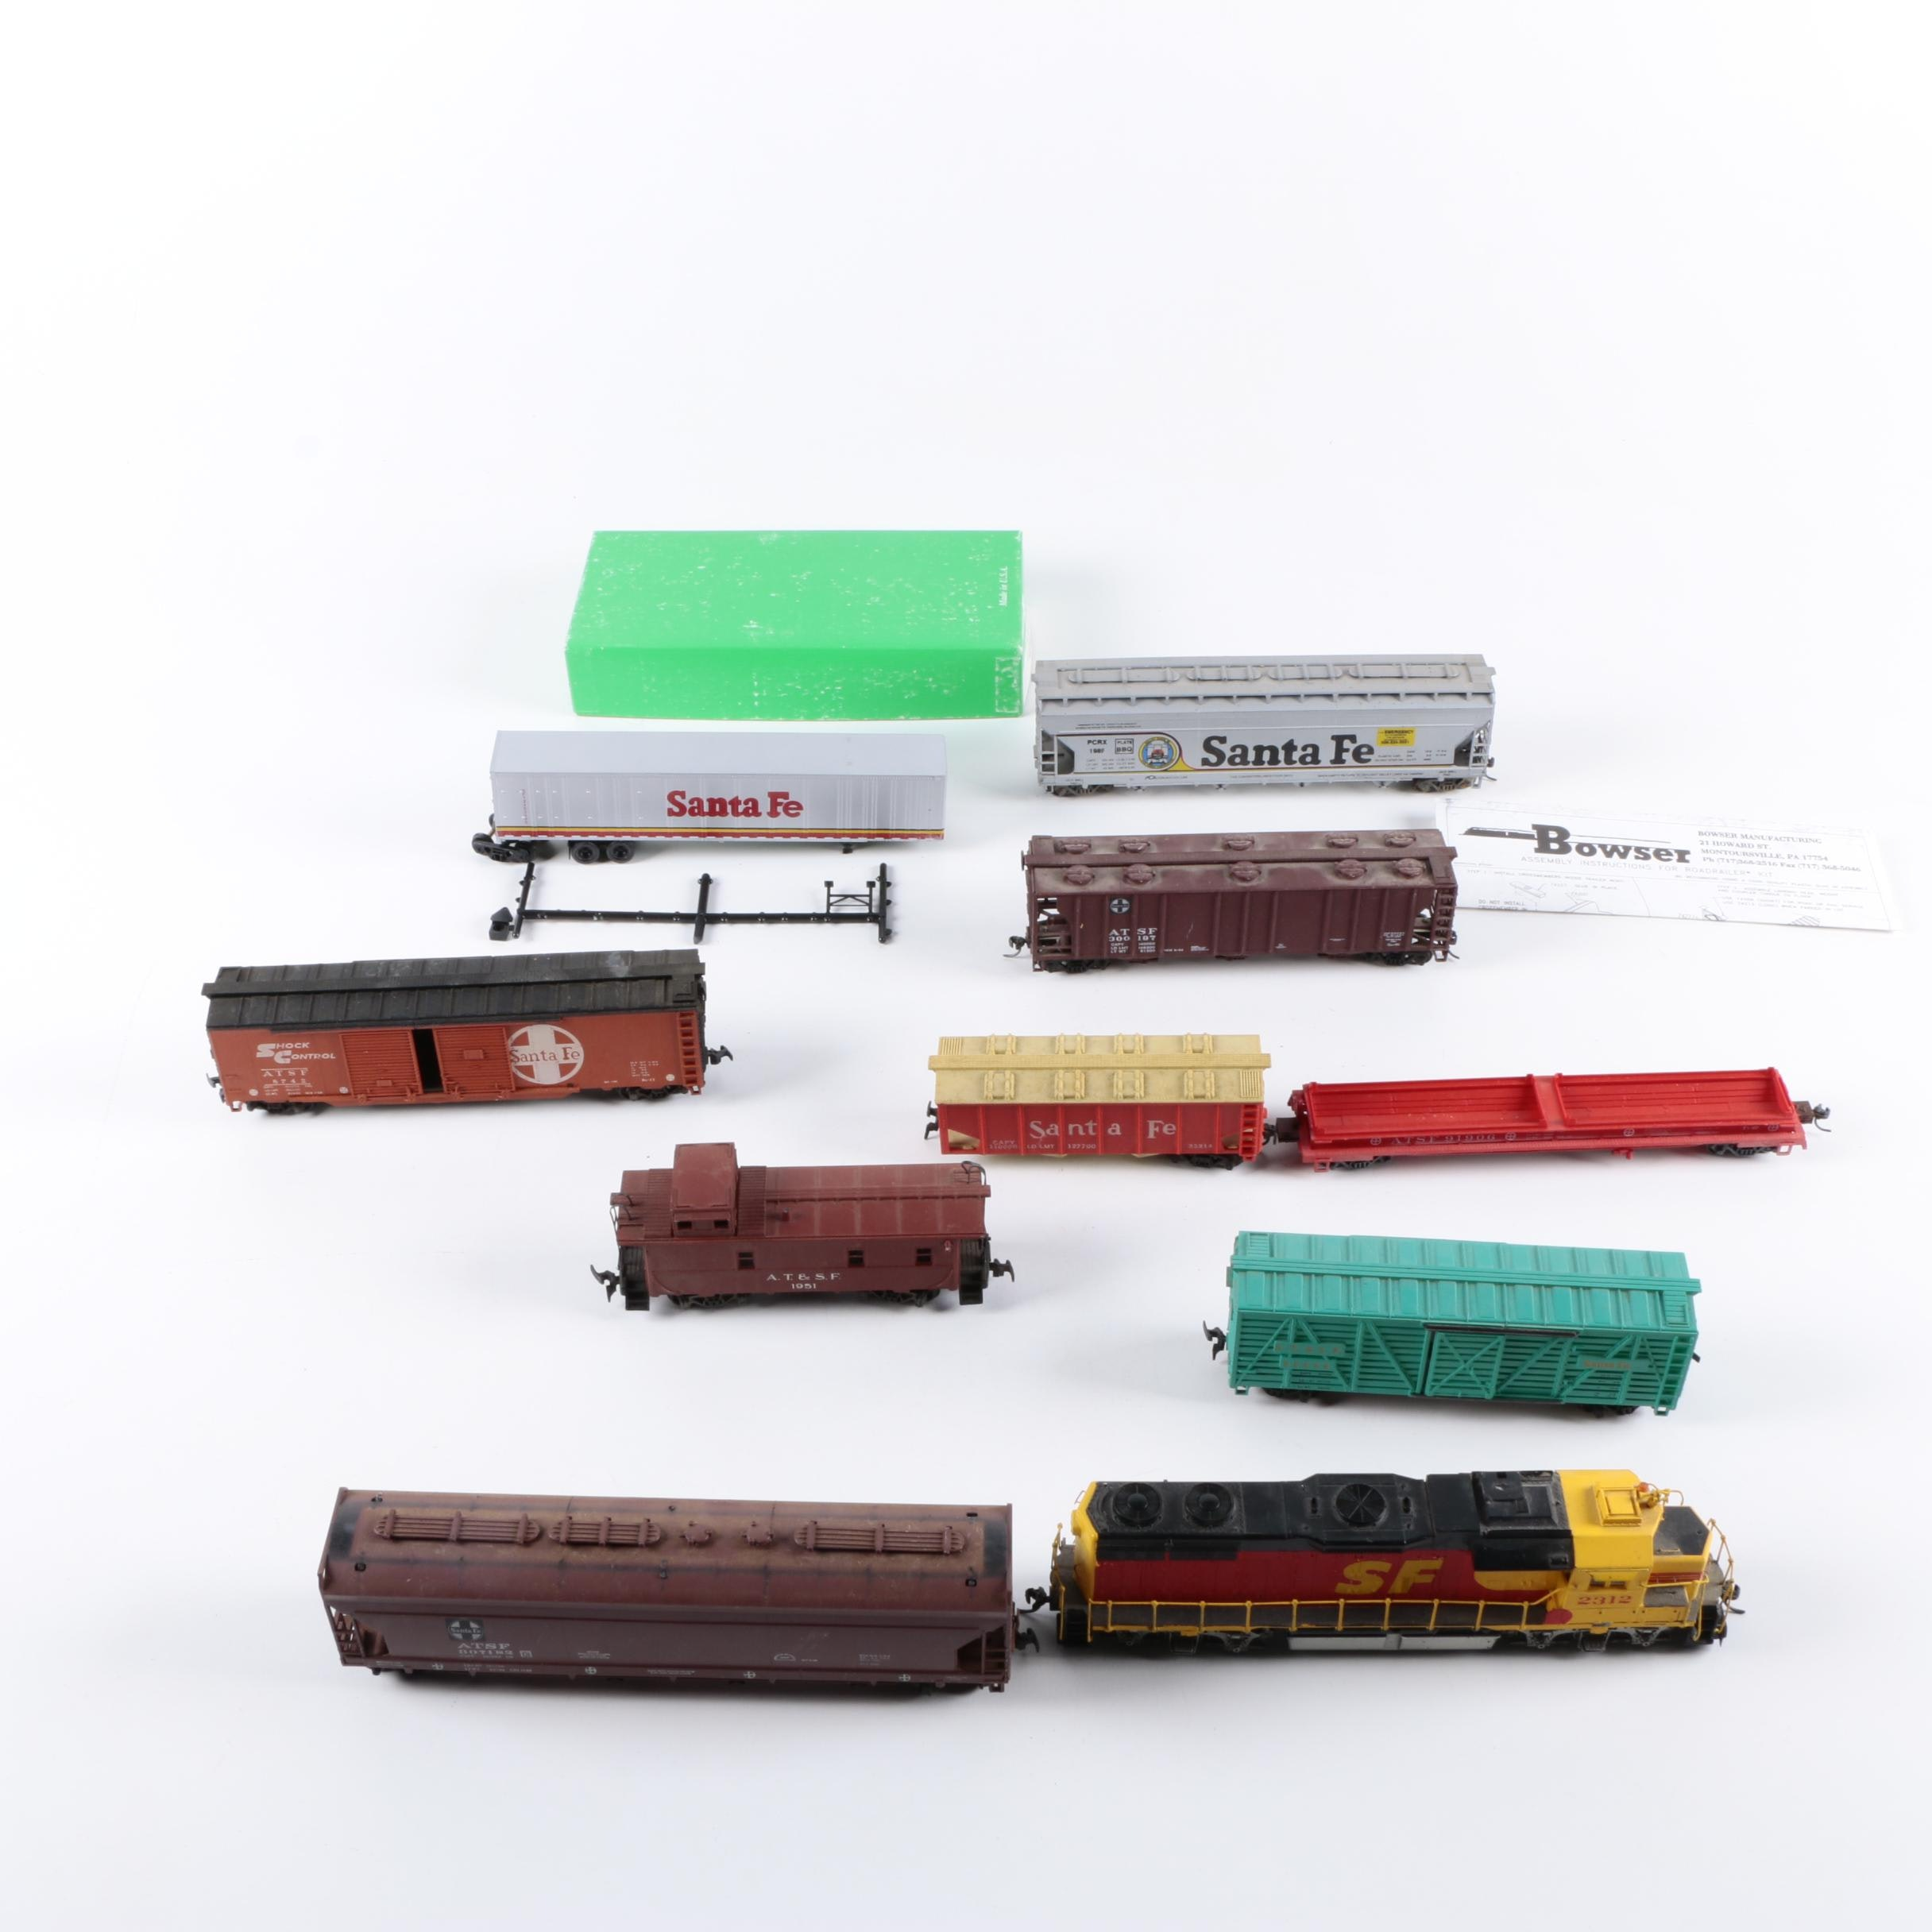 Assorted HO and N Scale Train Cars Including Rivarossi